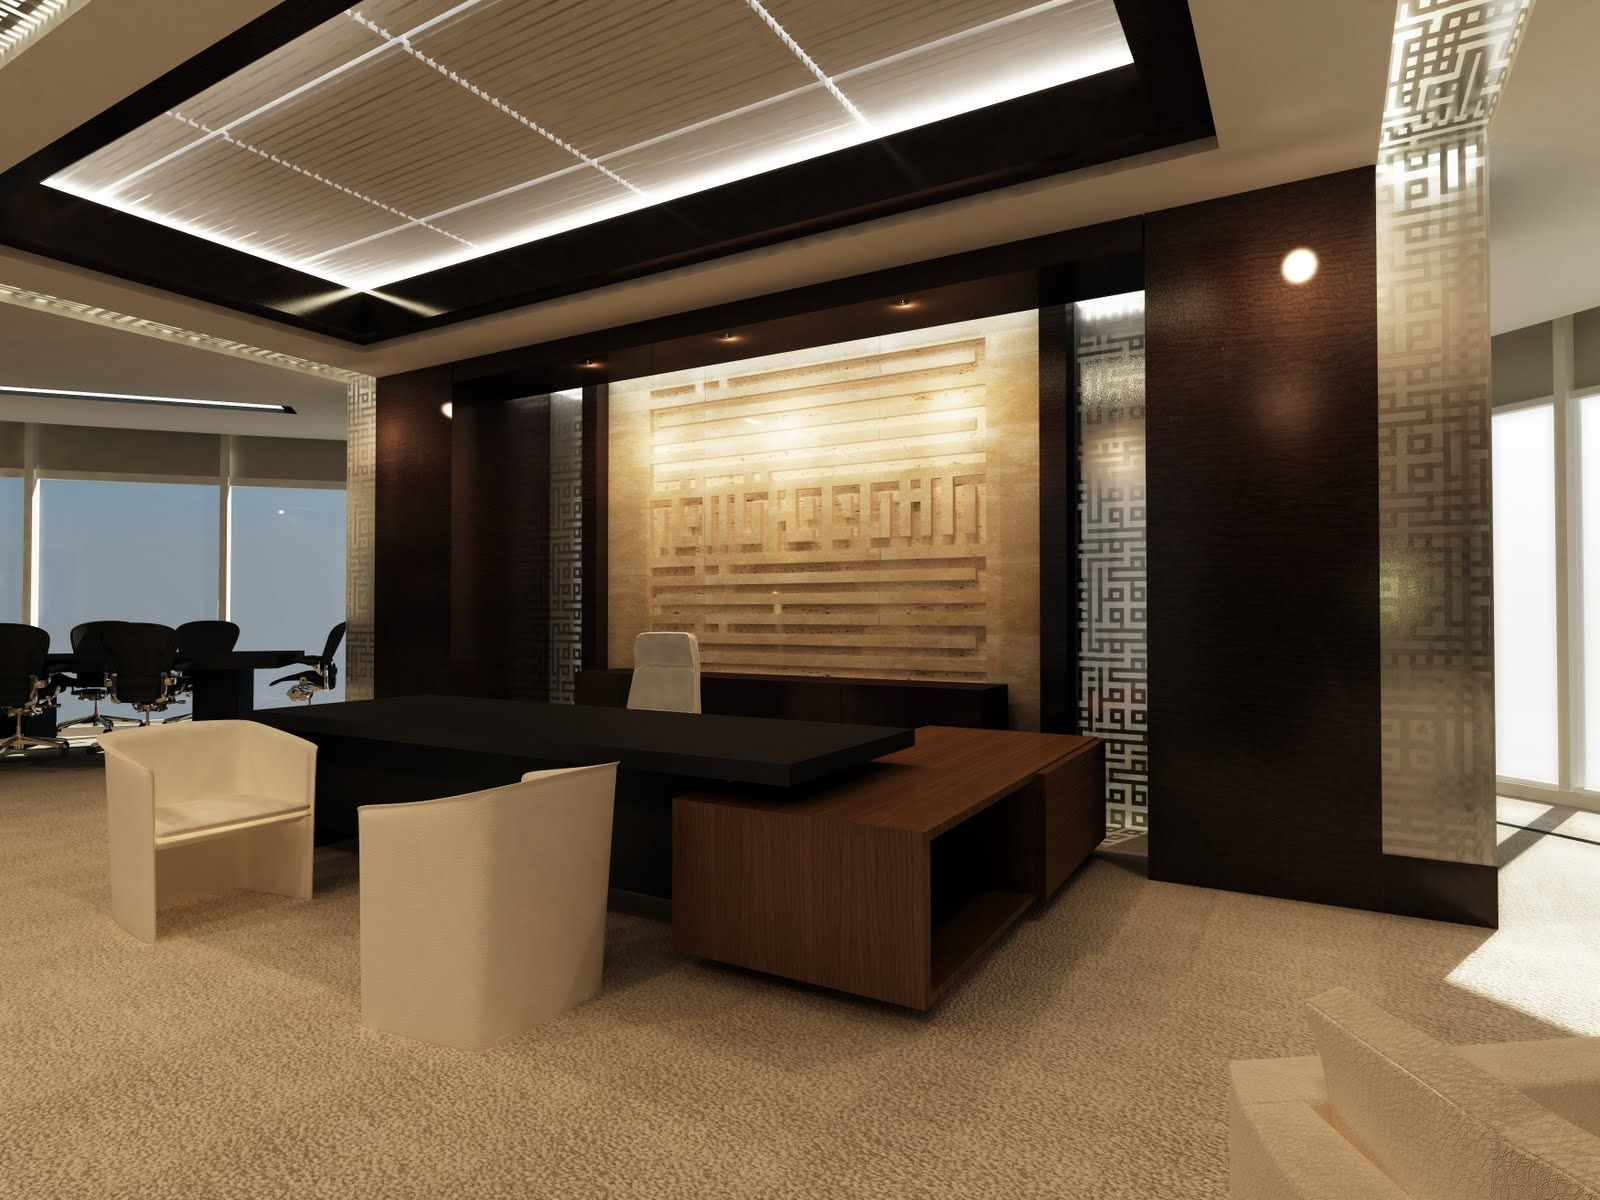 Office Furniture Design Ideas Office Interior Design Intended For Office Interior Design